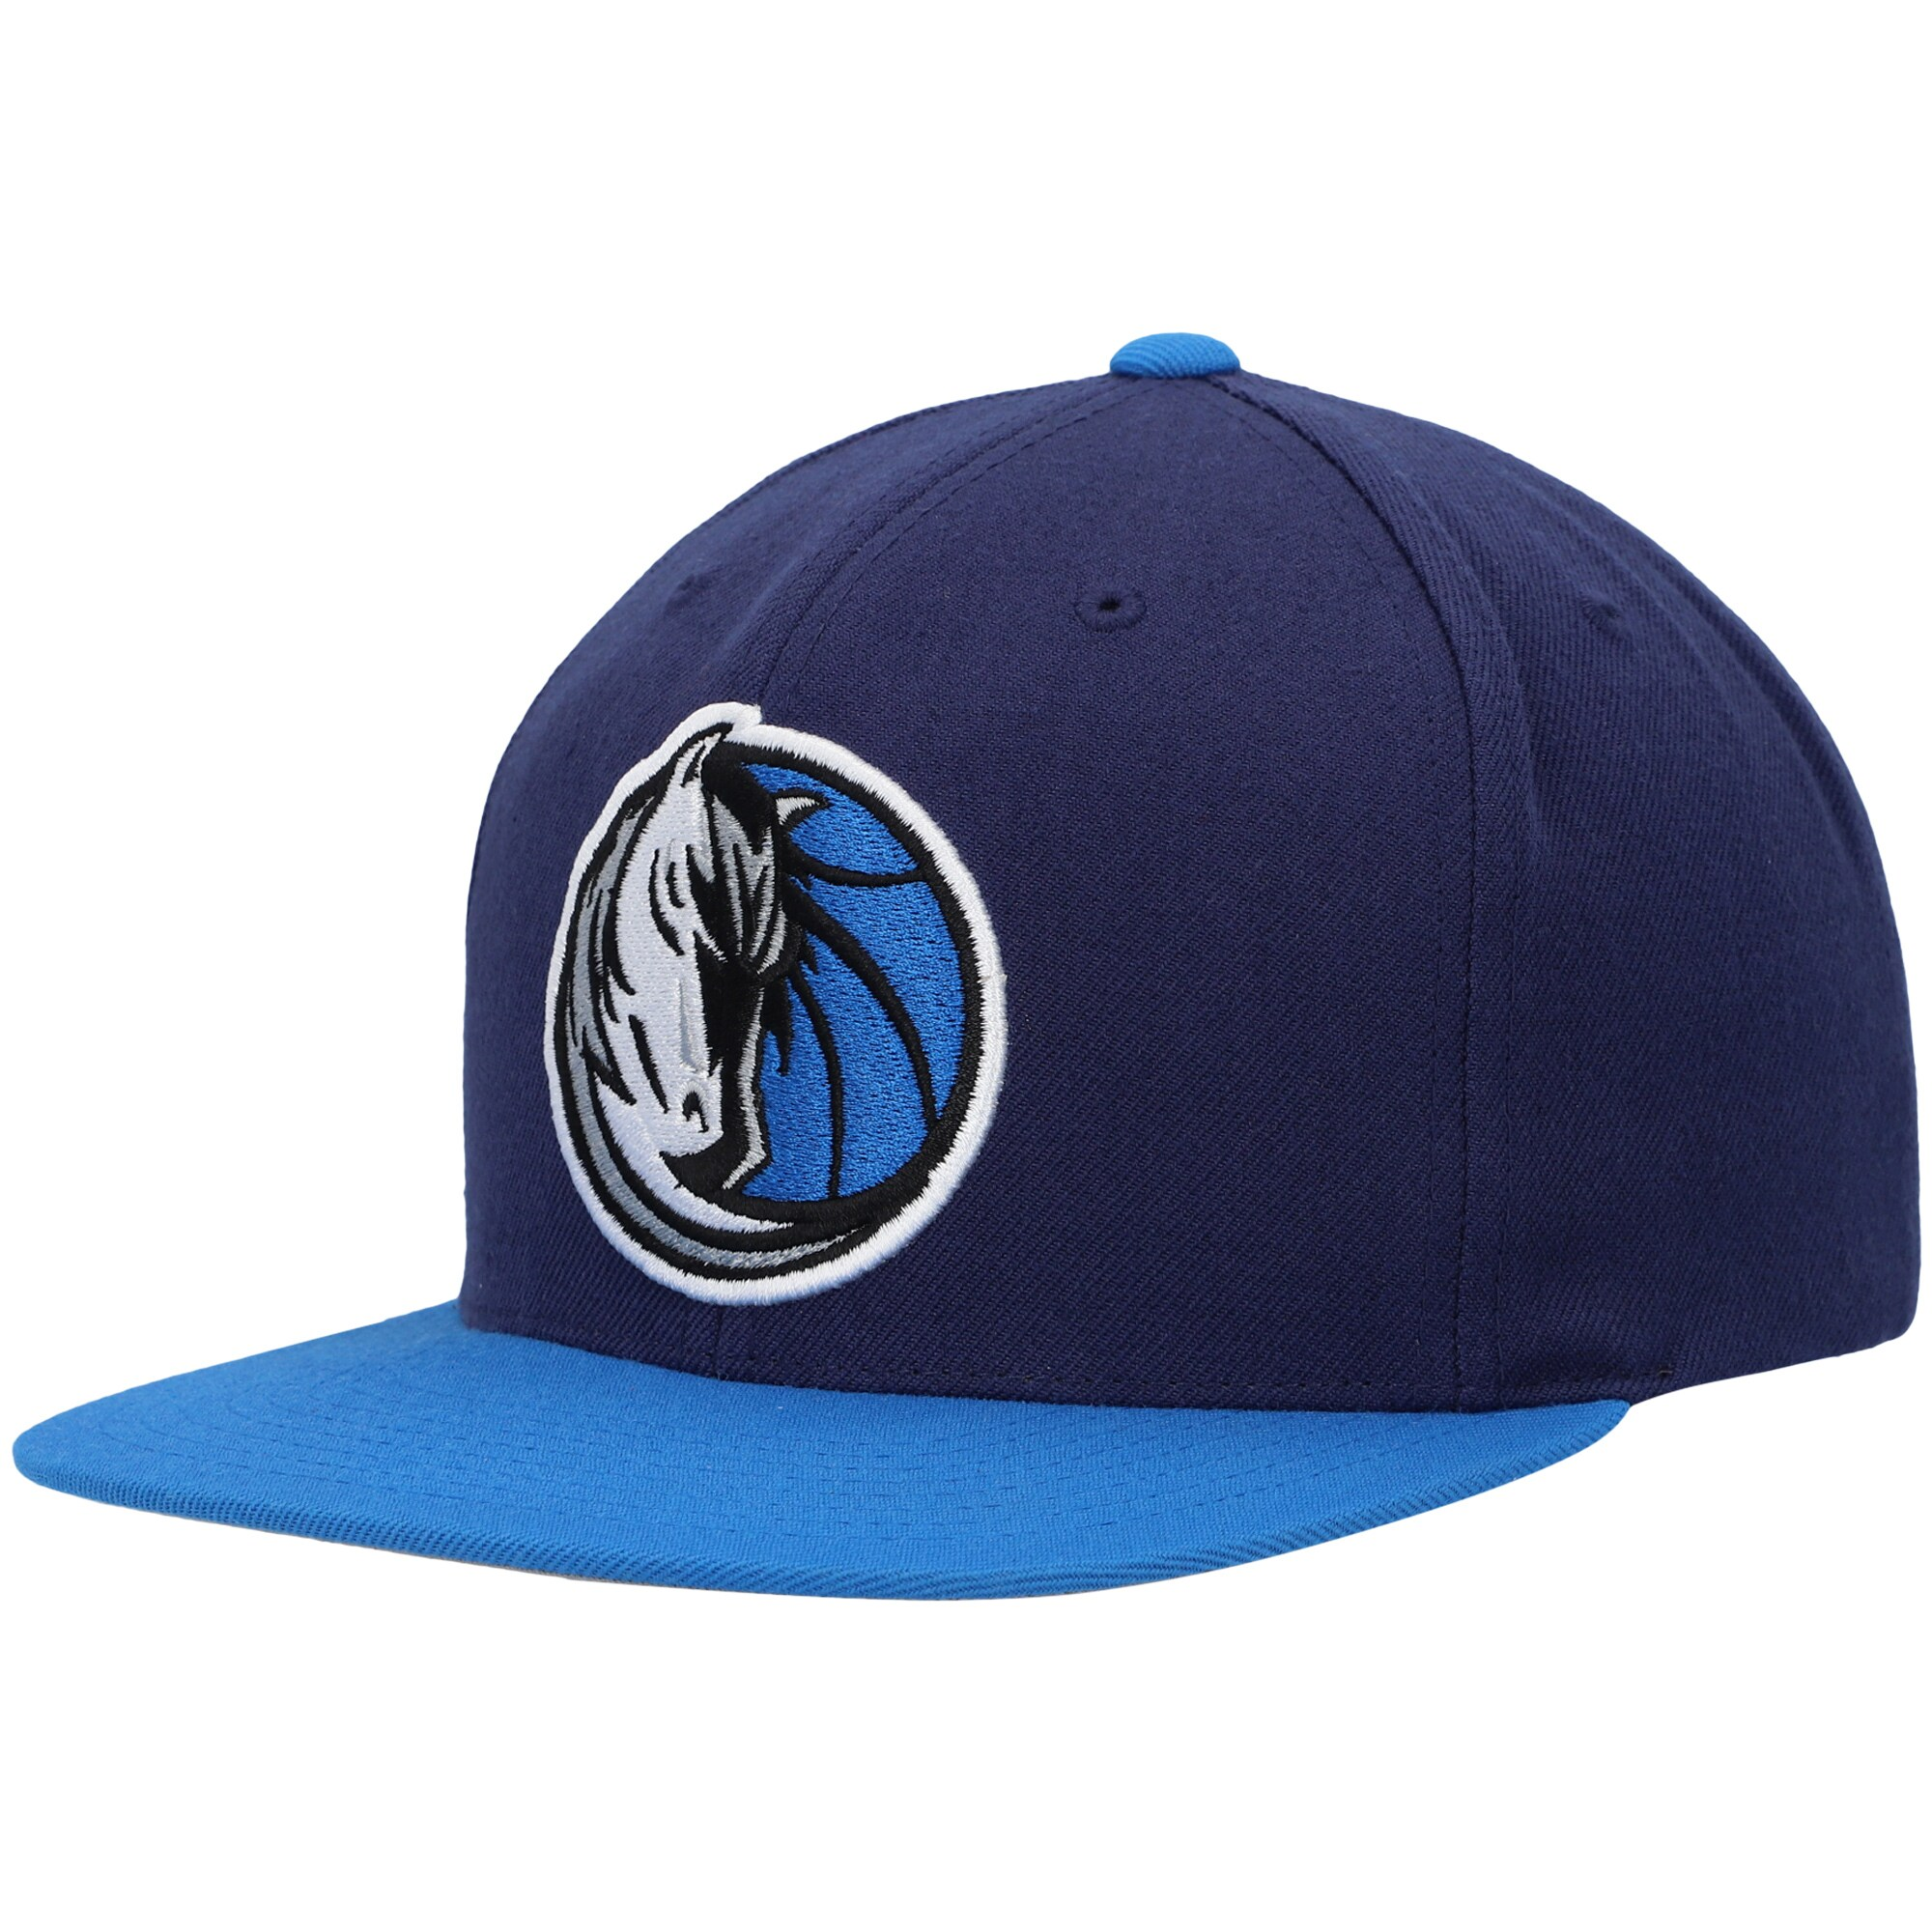 Dallas Mavericks Mitchell & Ness Two-Tone Wool Snapback Hat - Navy/Blue